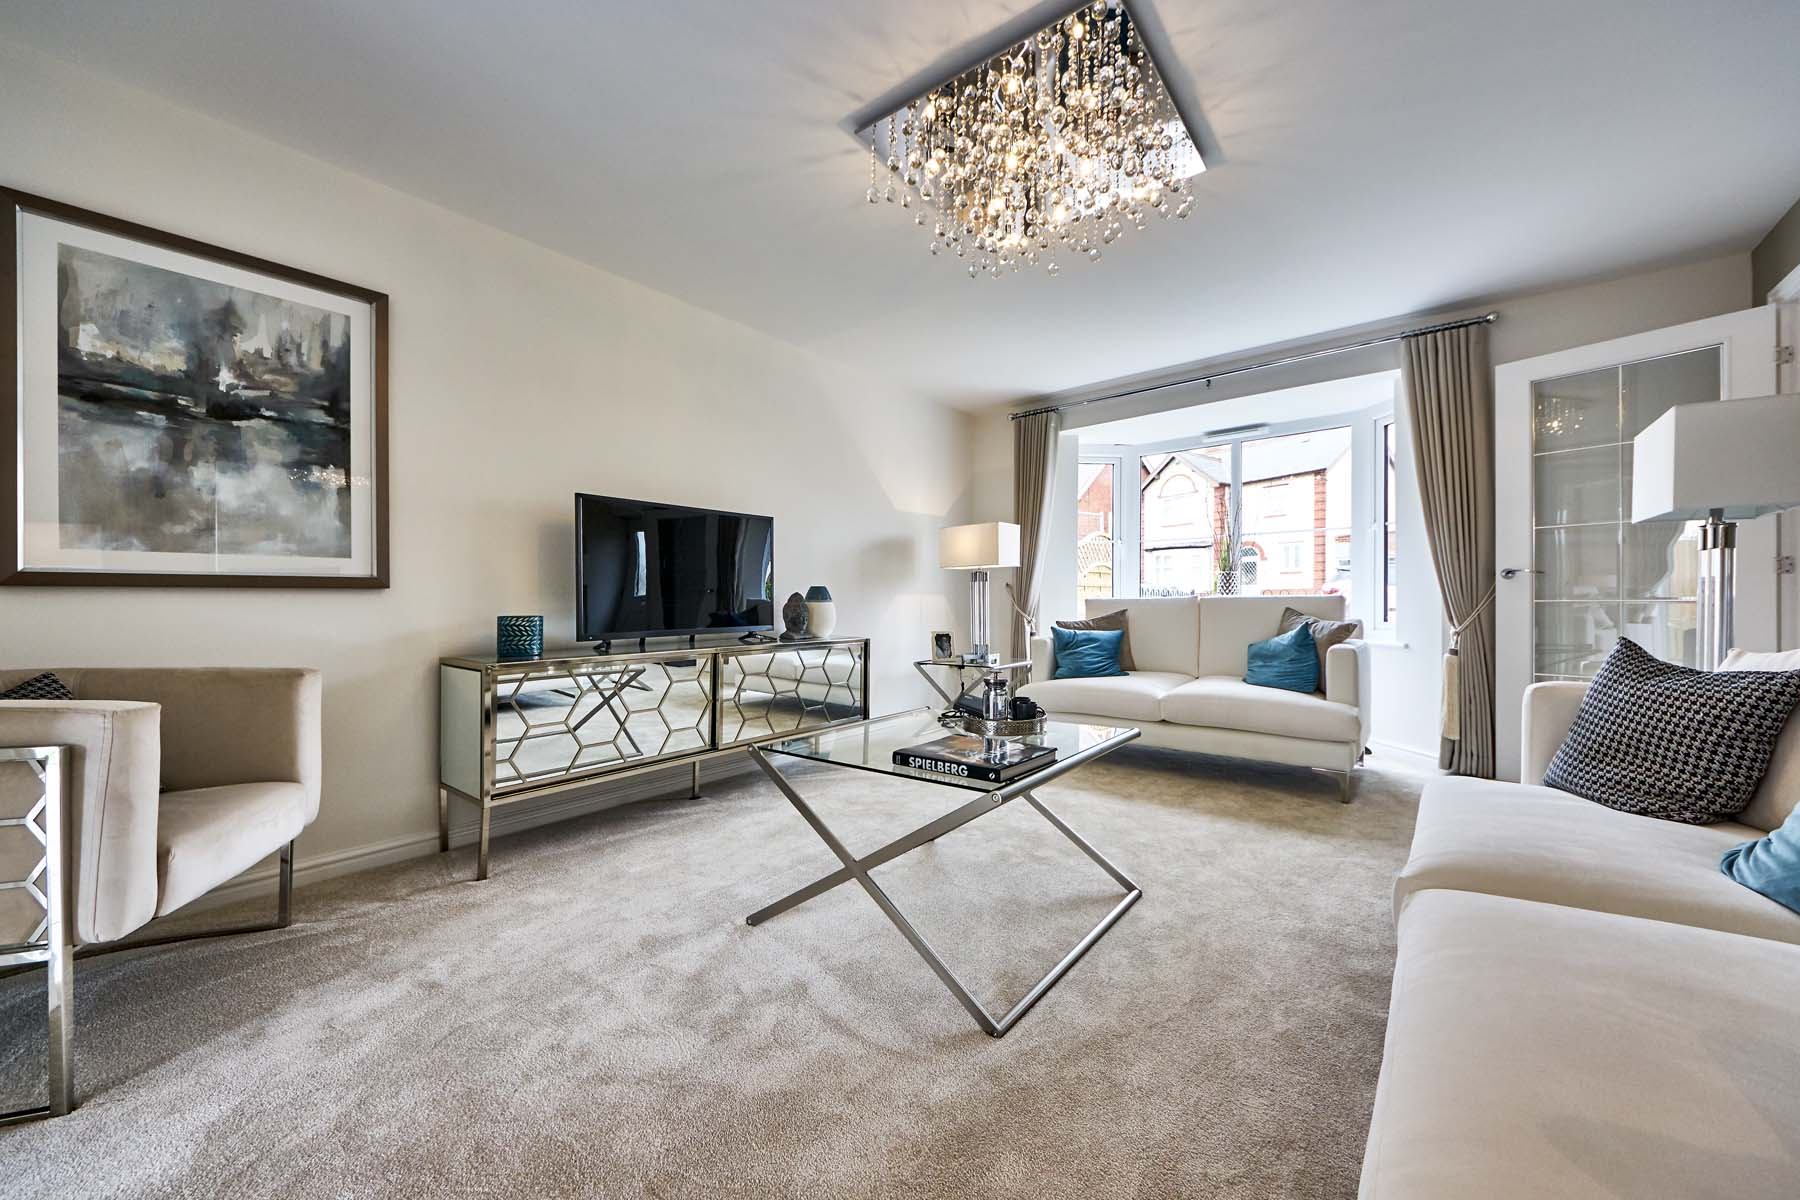 Shelford lounge 1a-showhome-05